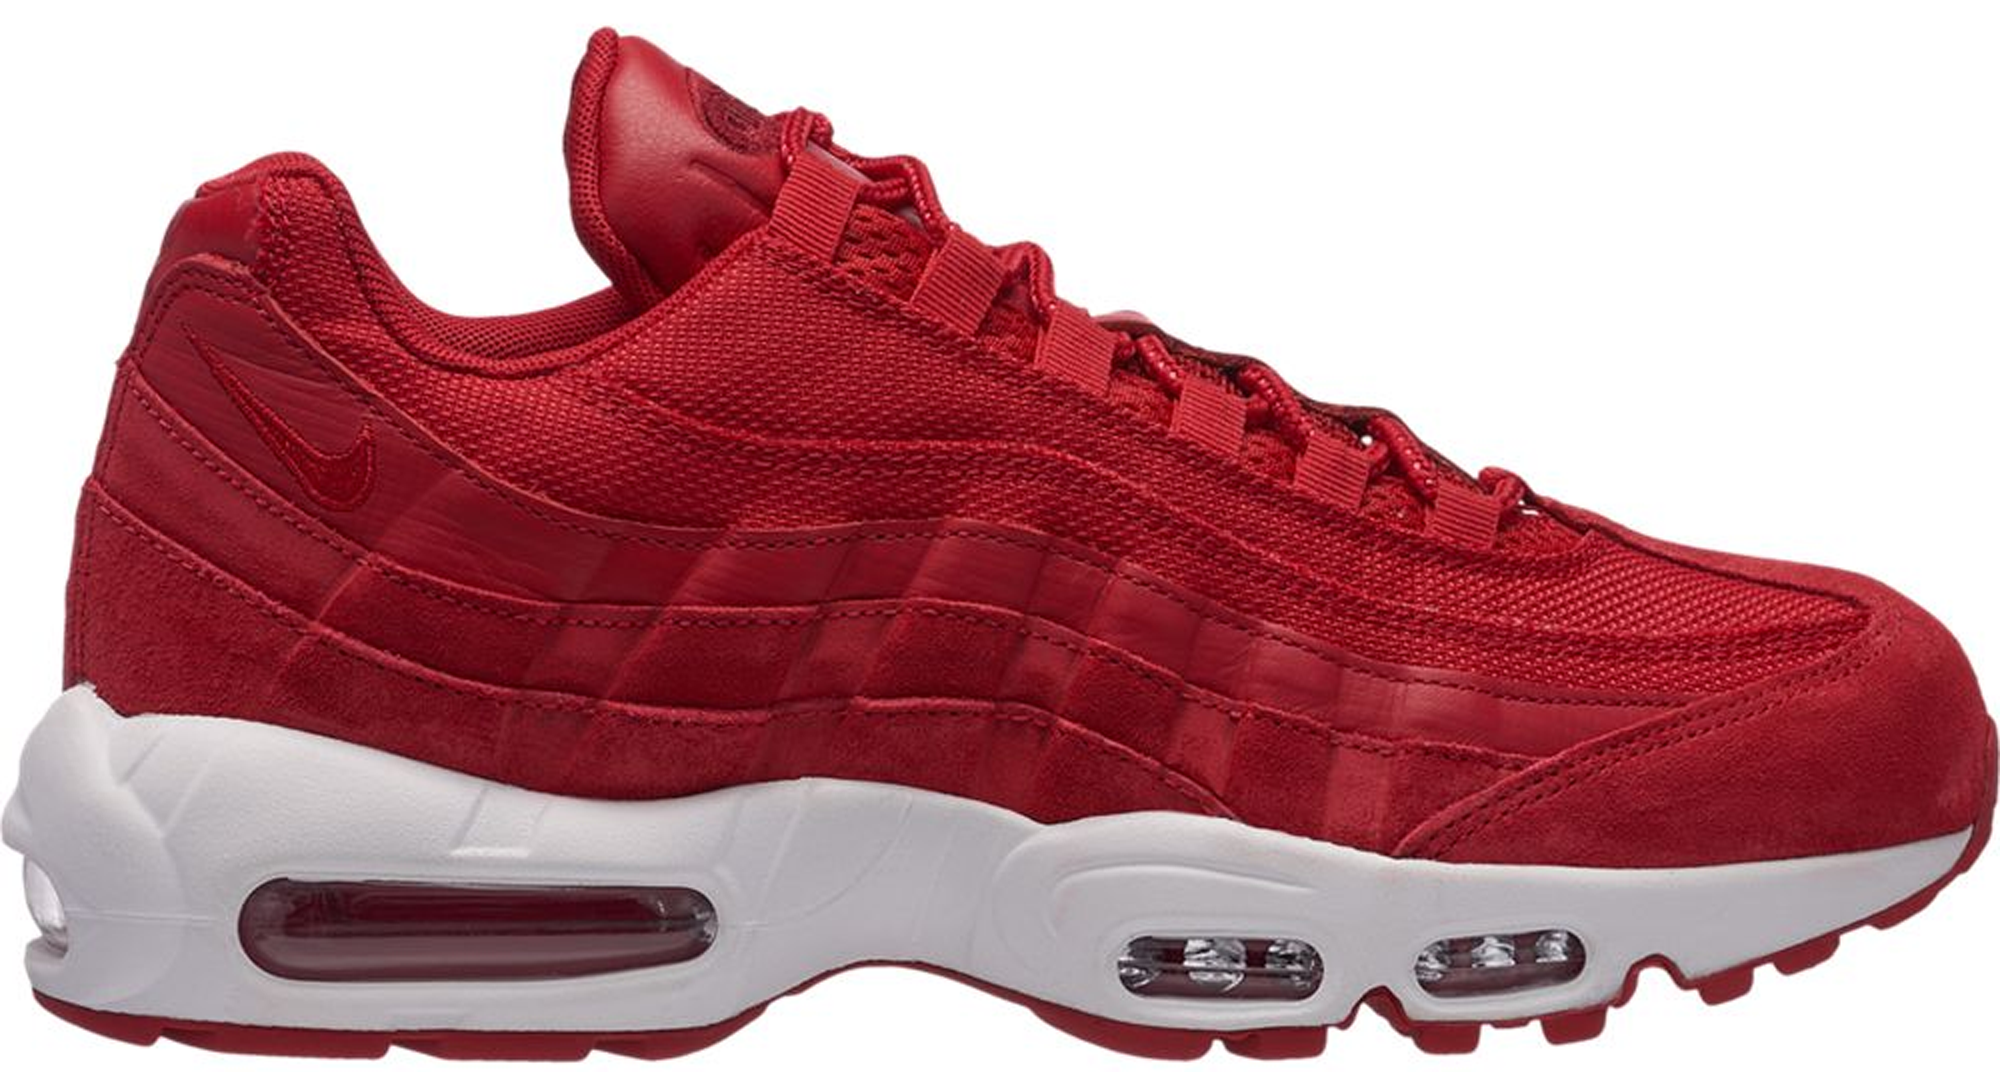 Nike Air Max 95 Gym Red Team Red